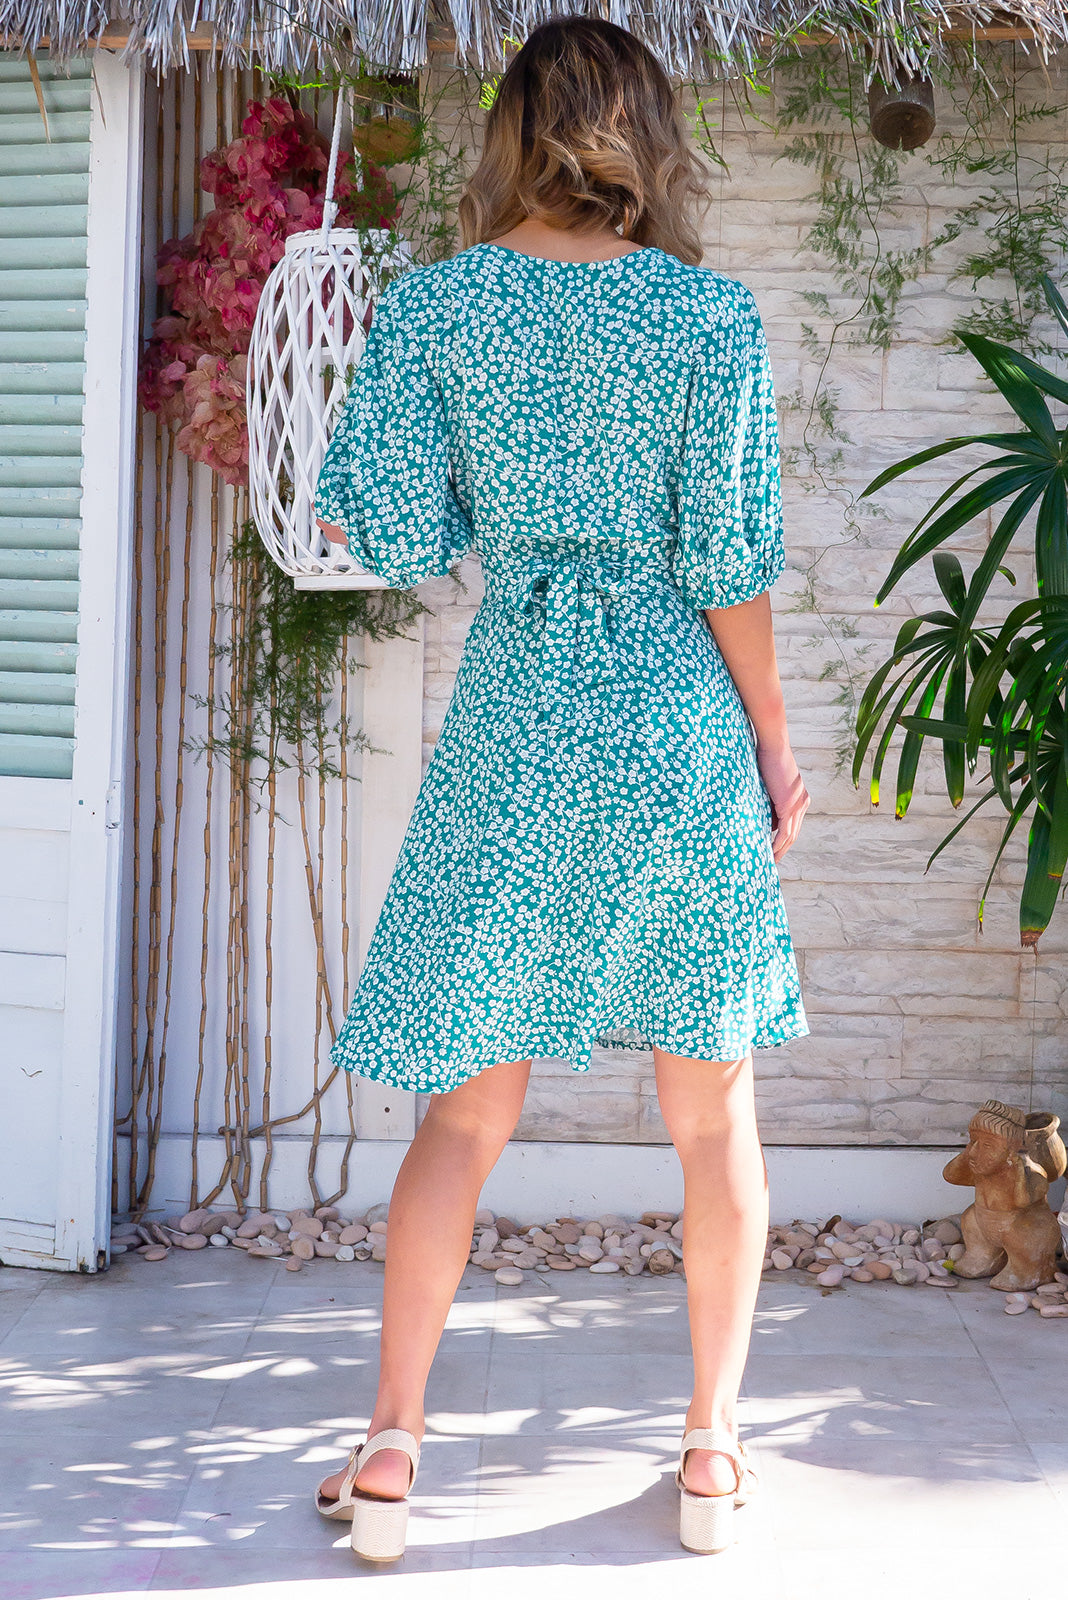 The Poppi Kelly Green Wrap Dress is flattering adjustable wrap design featuring elasticated waist band at the back, puff sleeves and 100 rayon in fresh green base with white floral print.